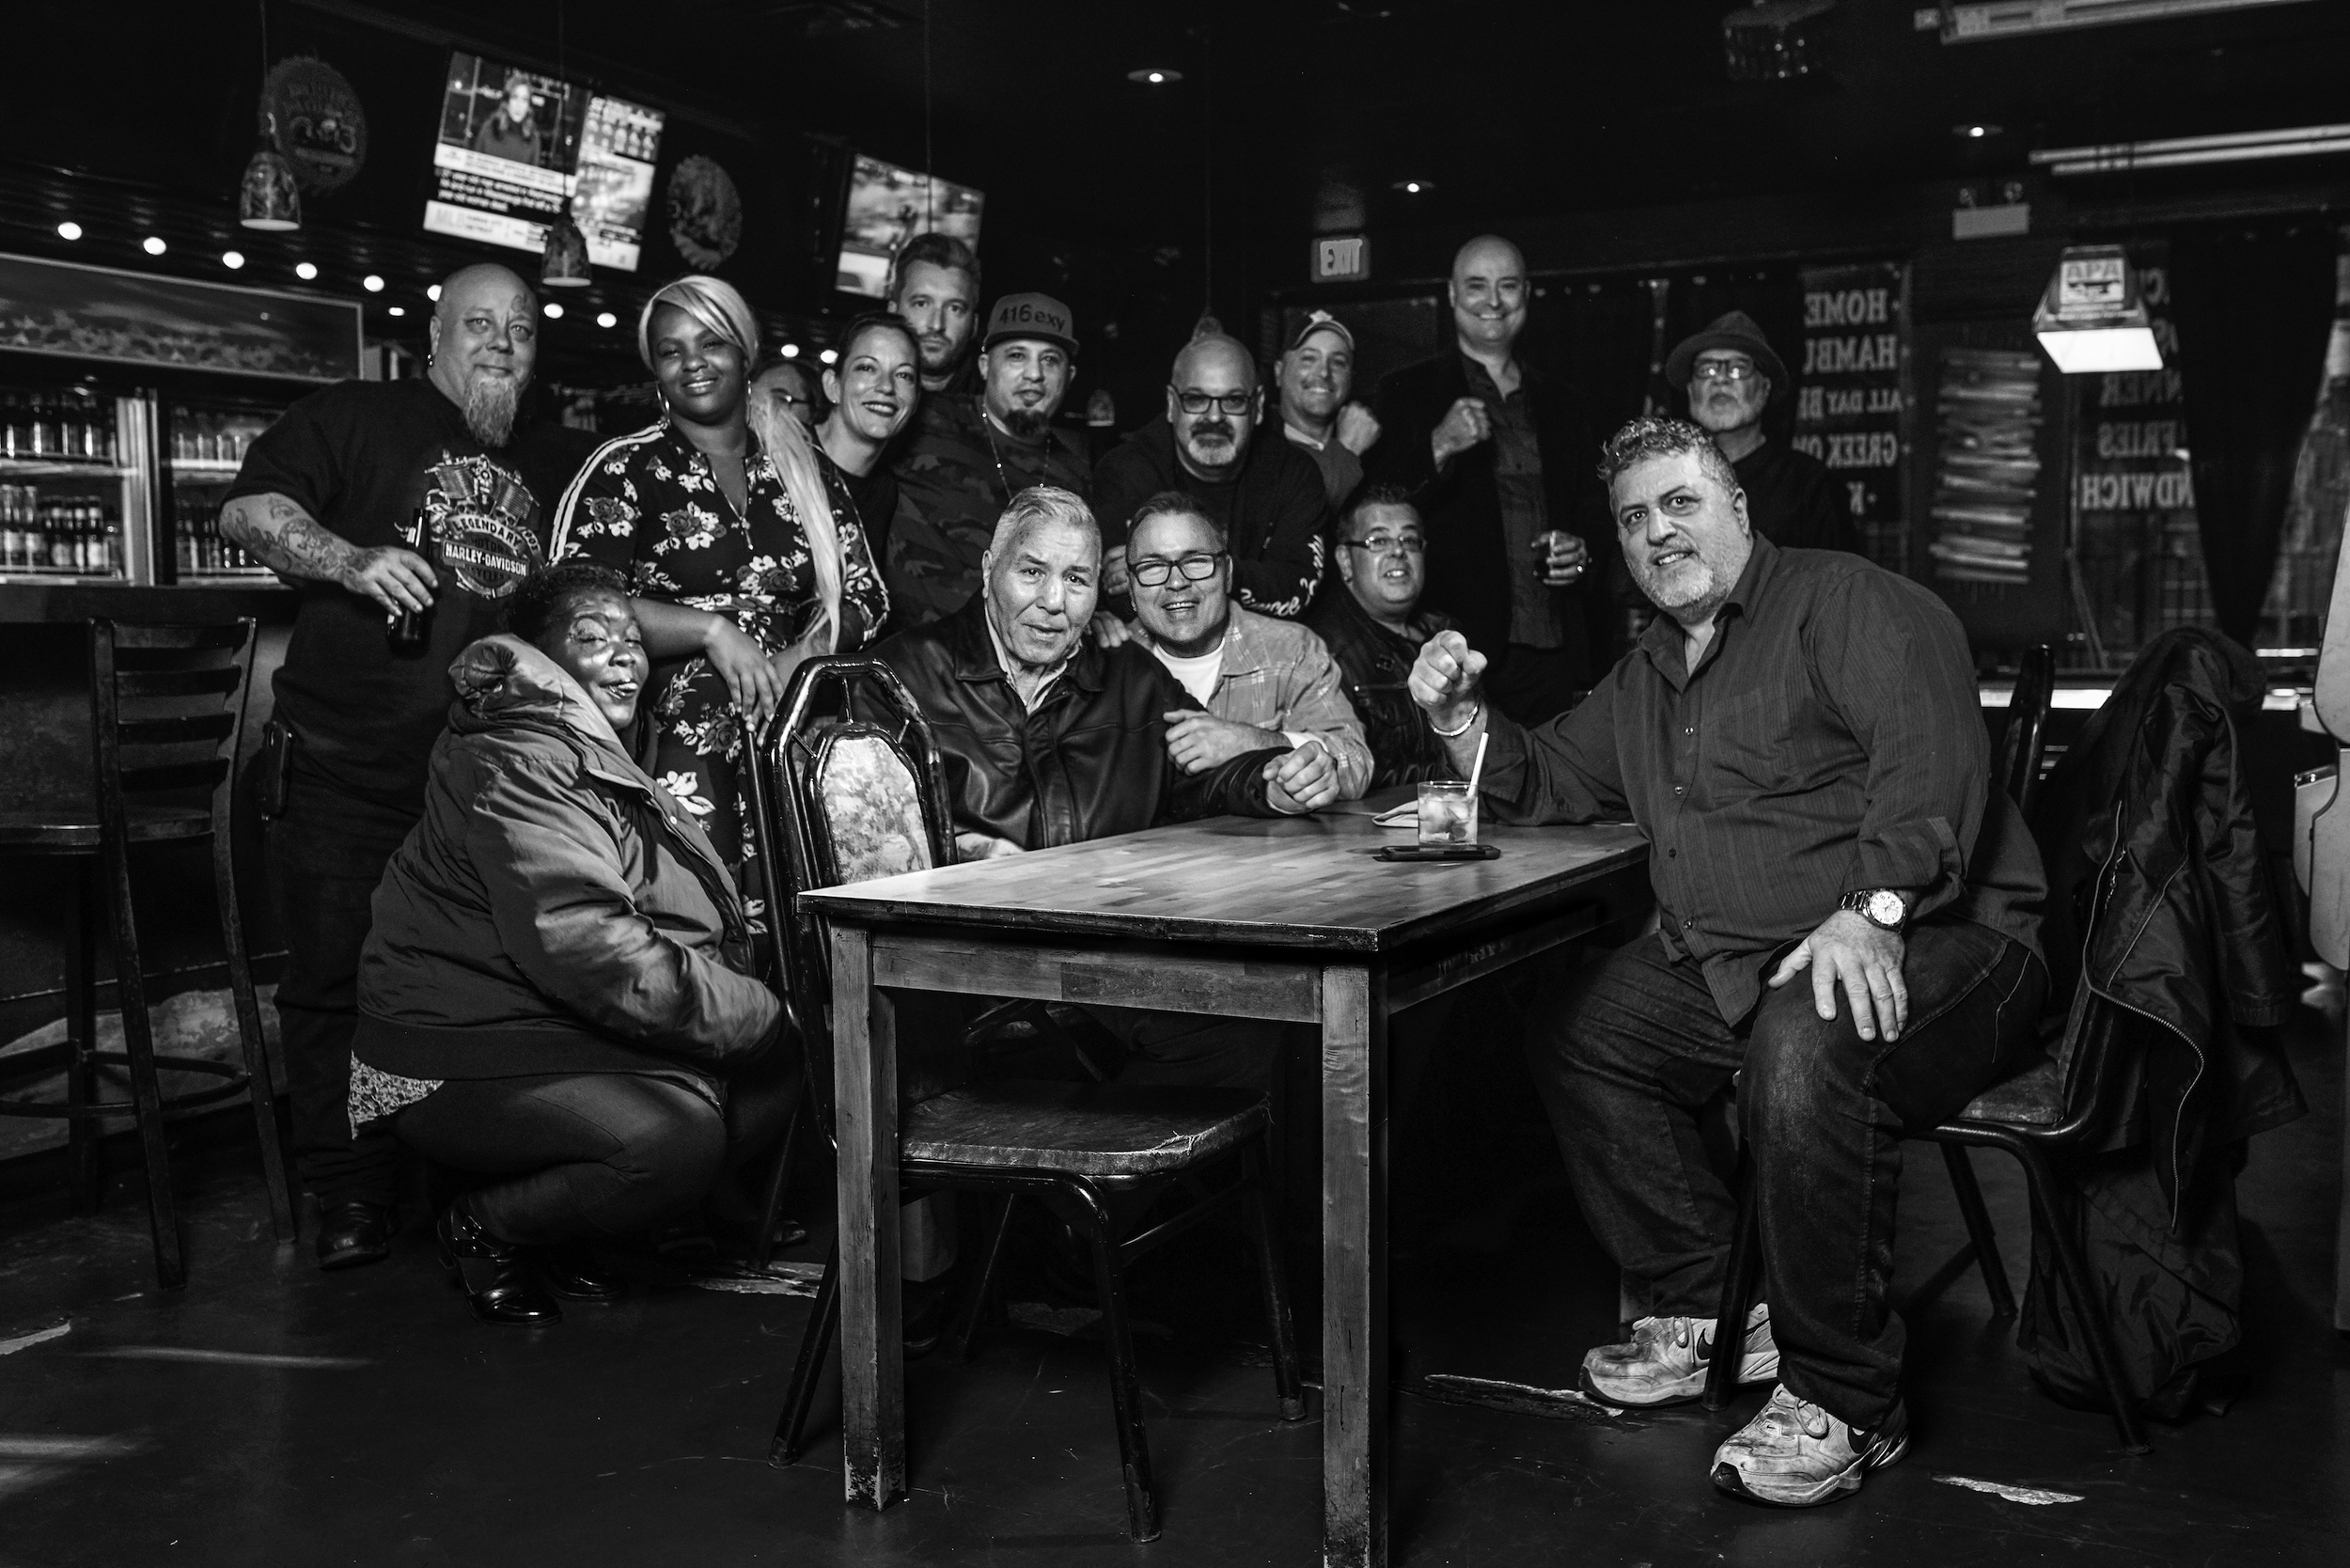 Group photo including George Chuvalo & his son Mitch at the Pegasus Bar & Grill in the Junction, Toronto